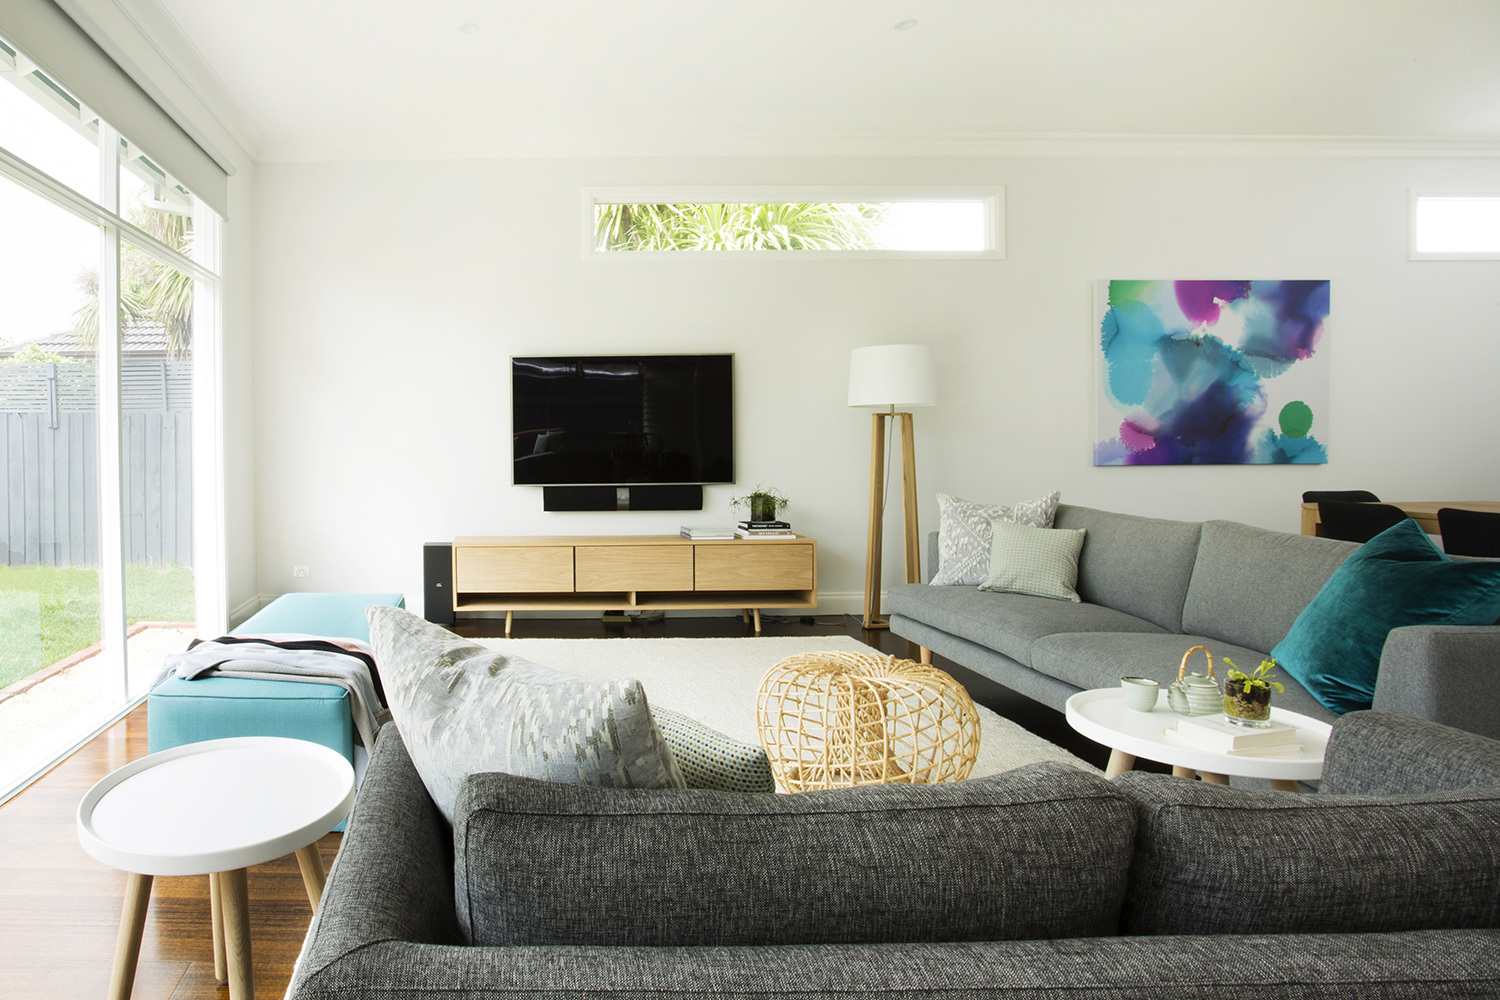 Living room design by Melbourne interior designer Meredith Lee